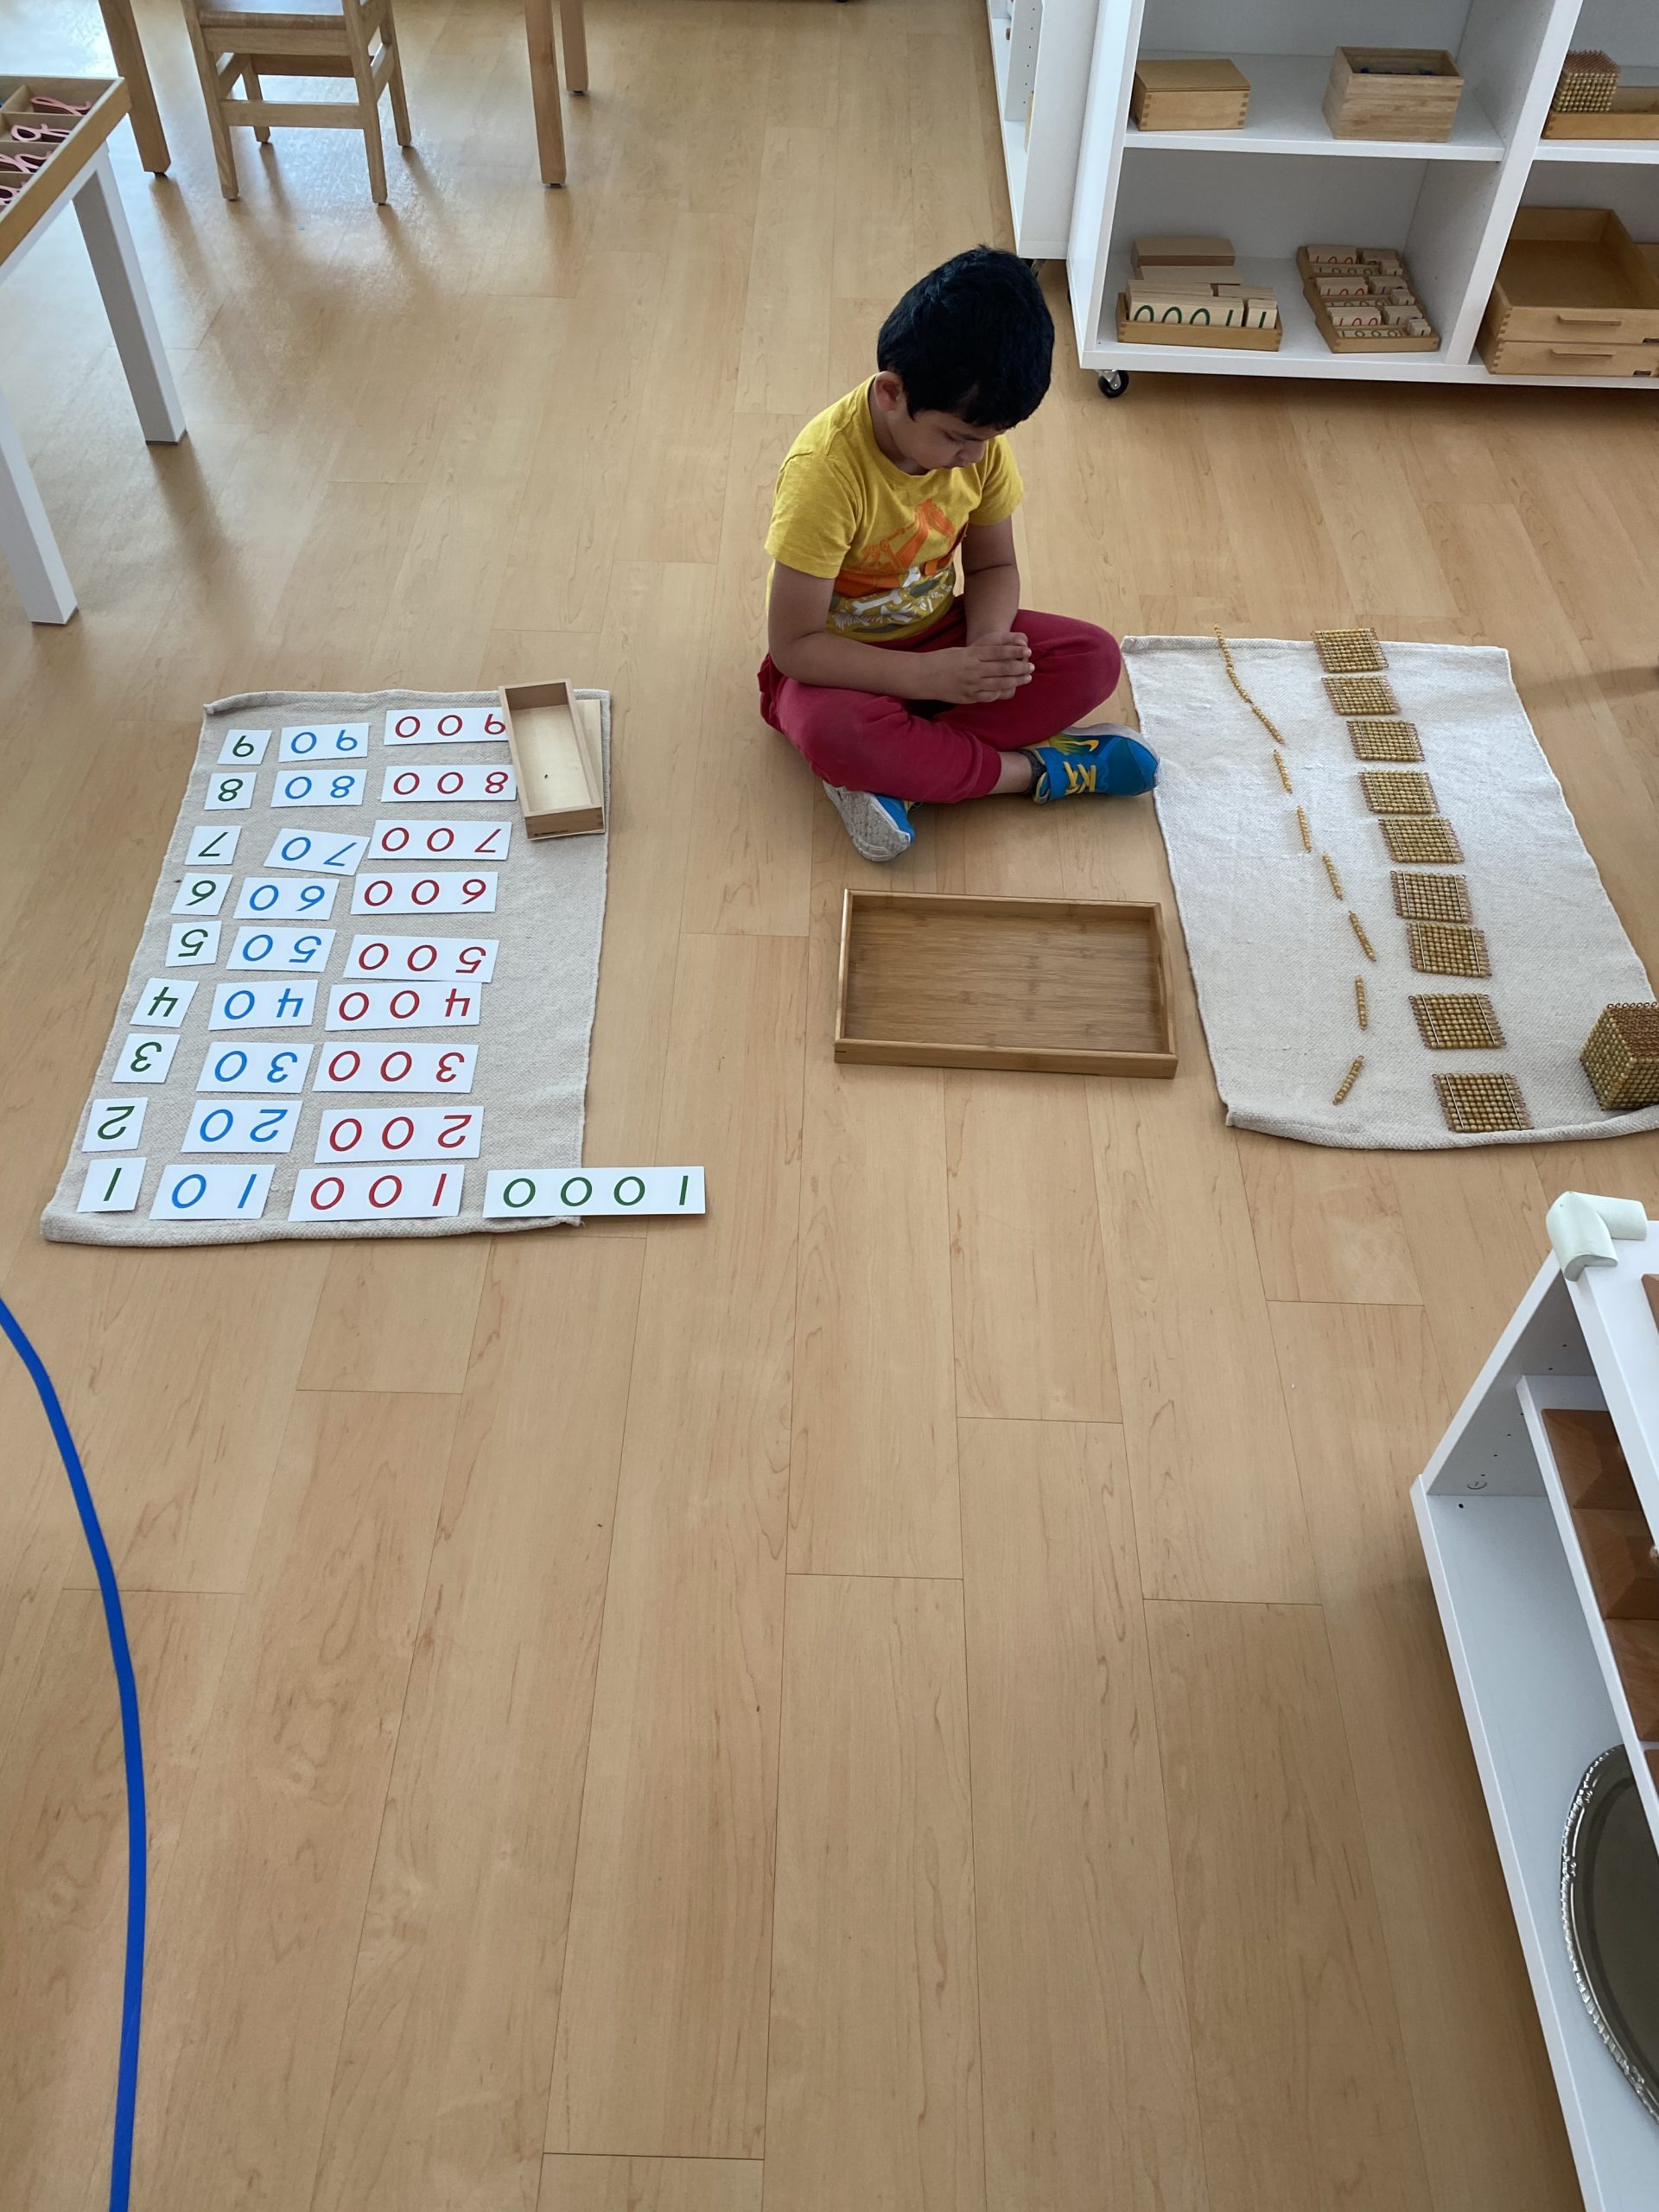 Child thinking and solving problems